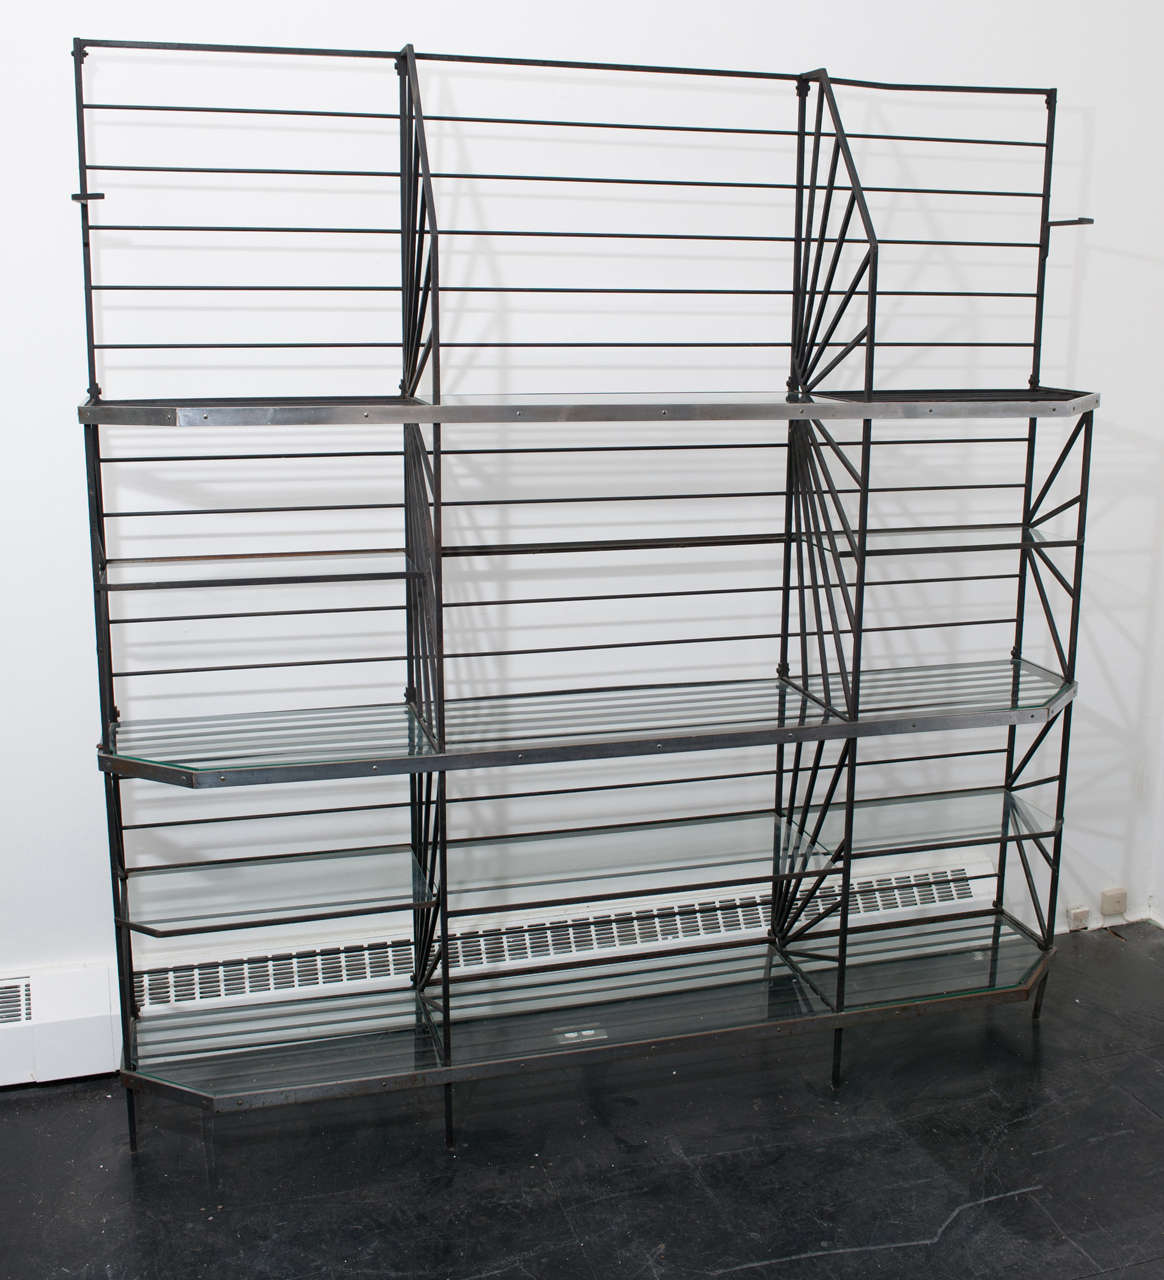 This is a stunning bakers/ display rack from the Art Deco period with fitted glass shelves and chrome metal banding. A sculptural and geometric beauty that combines form and function.